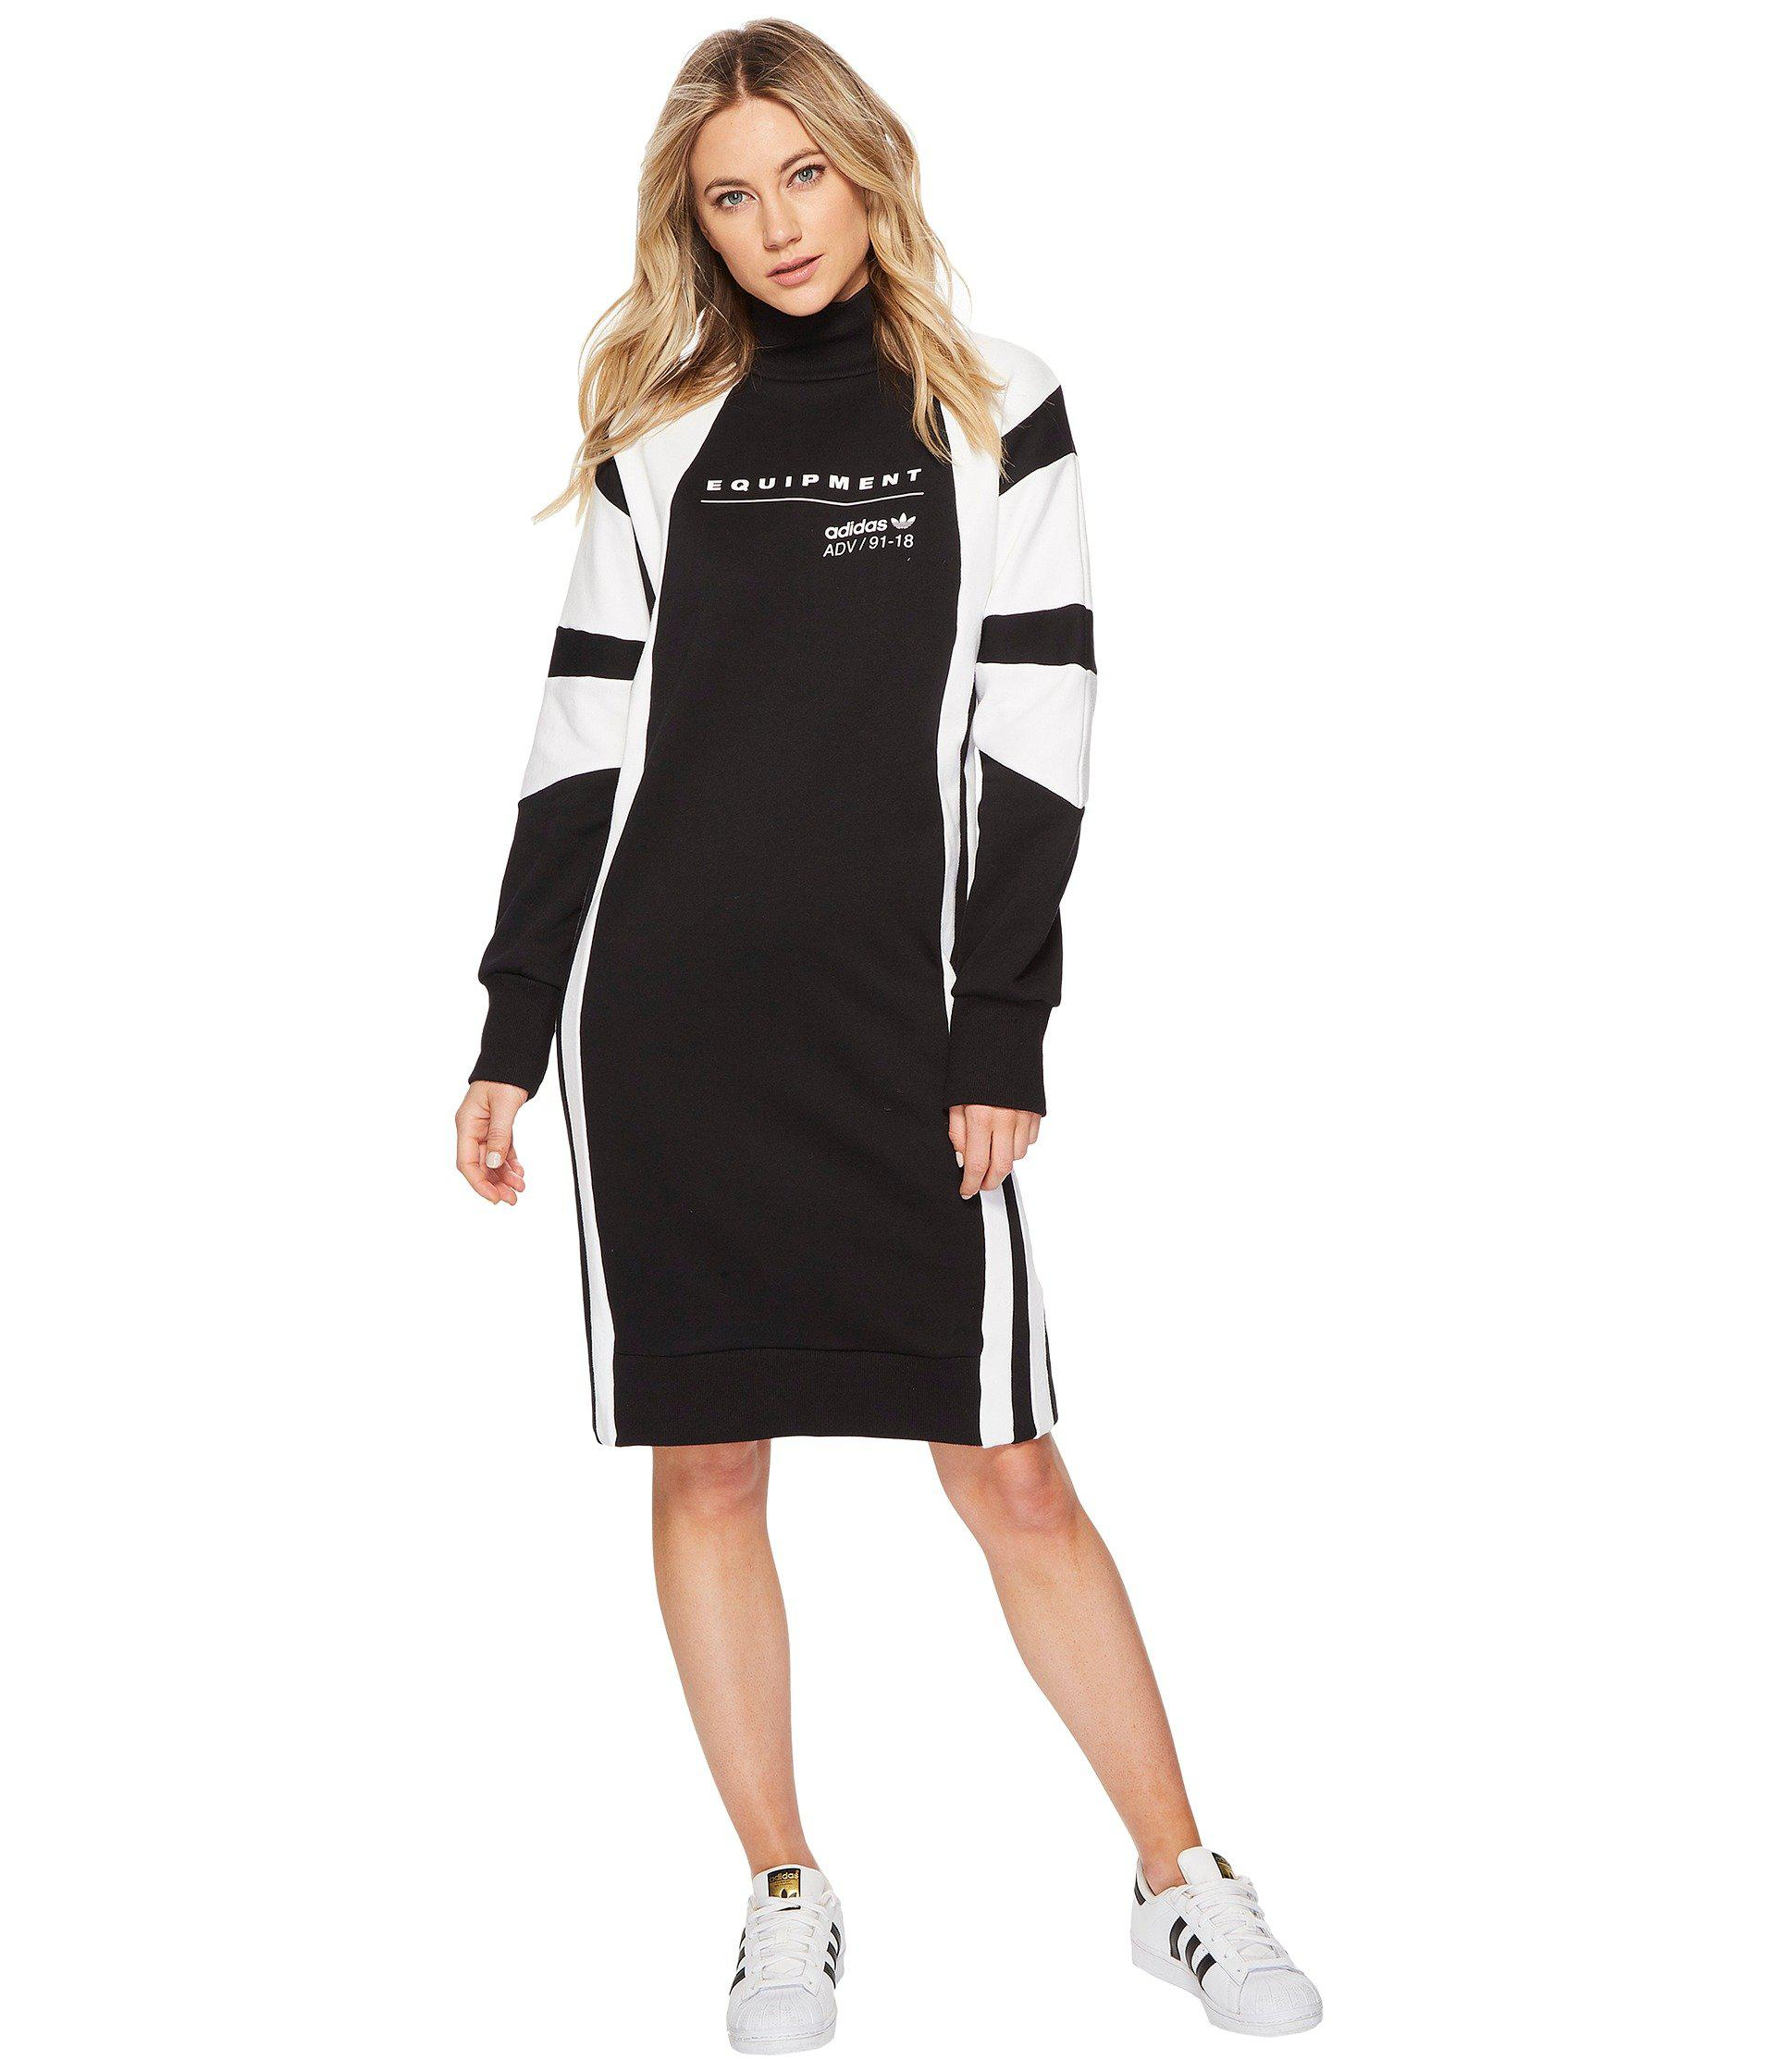 4de5f2869259 Lyst - adidas Originals Eqt Dress in Black